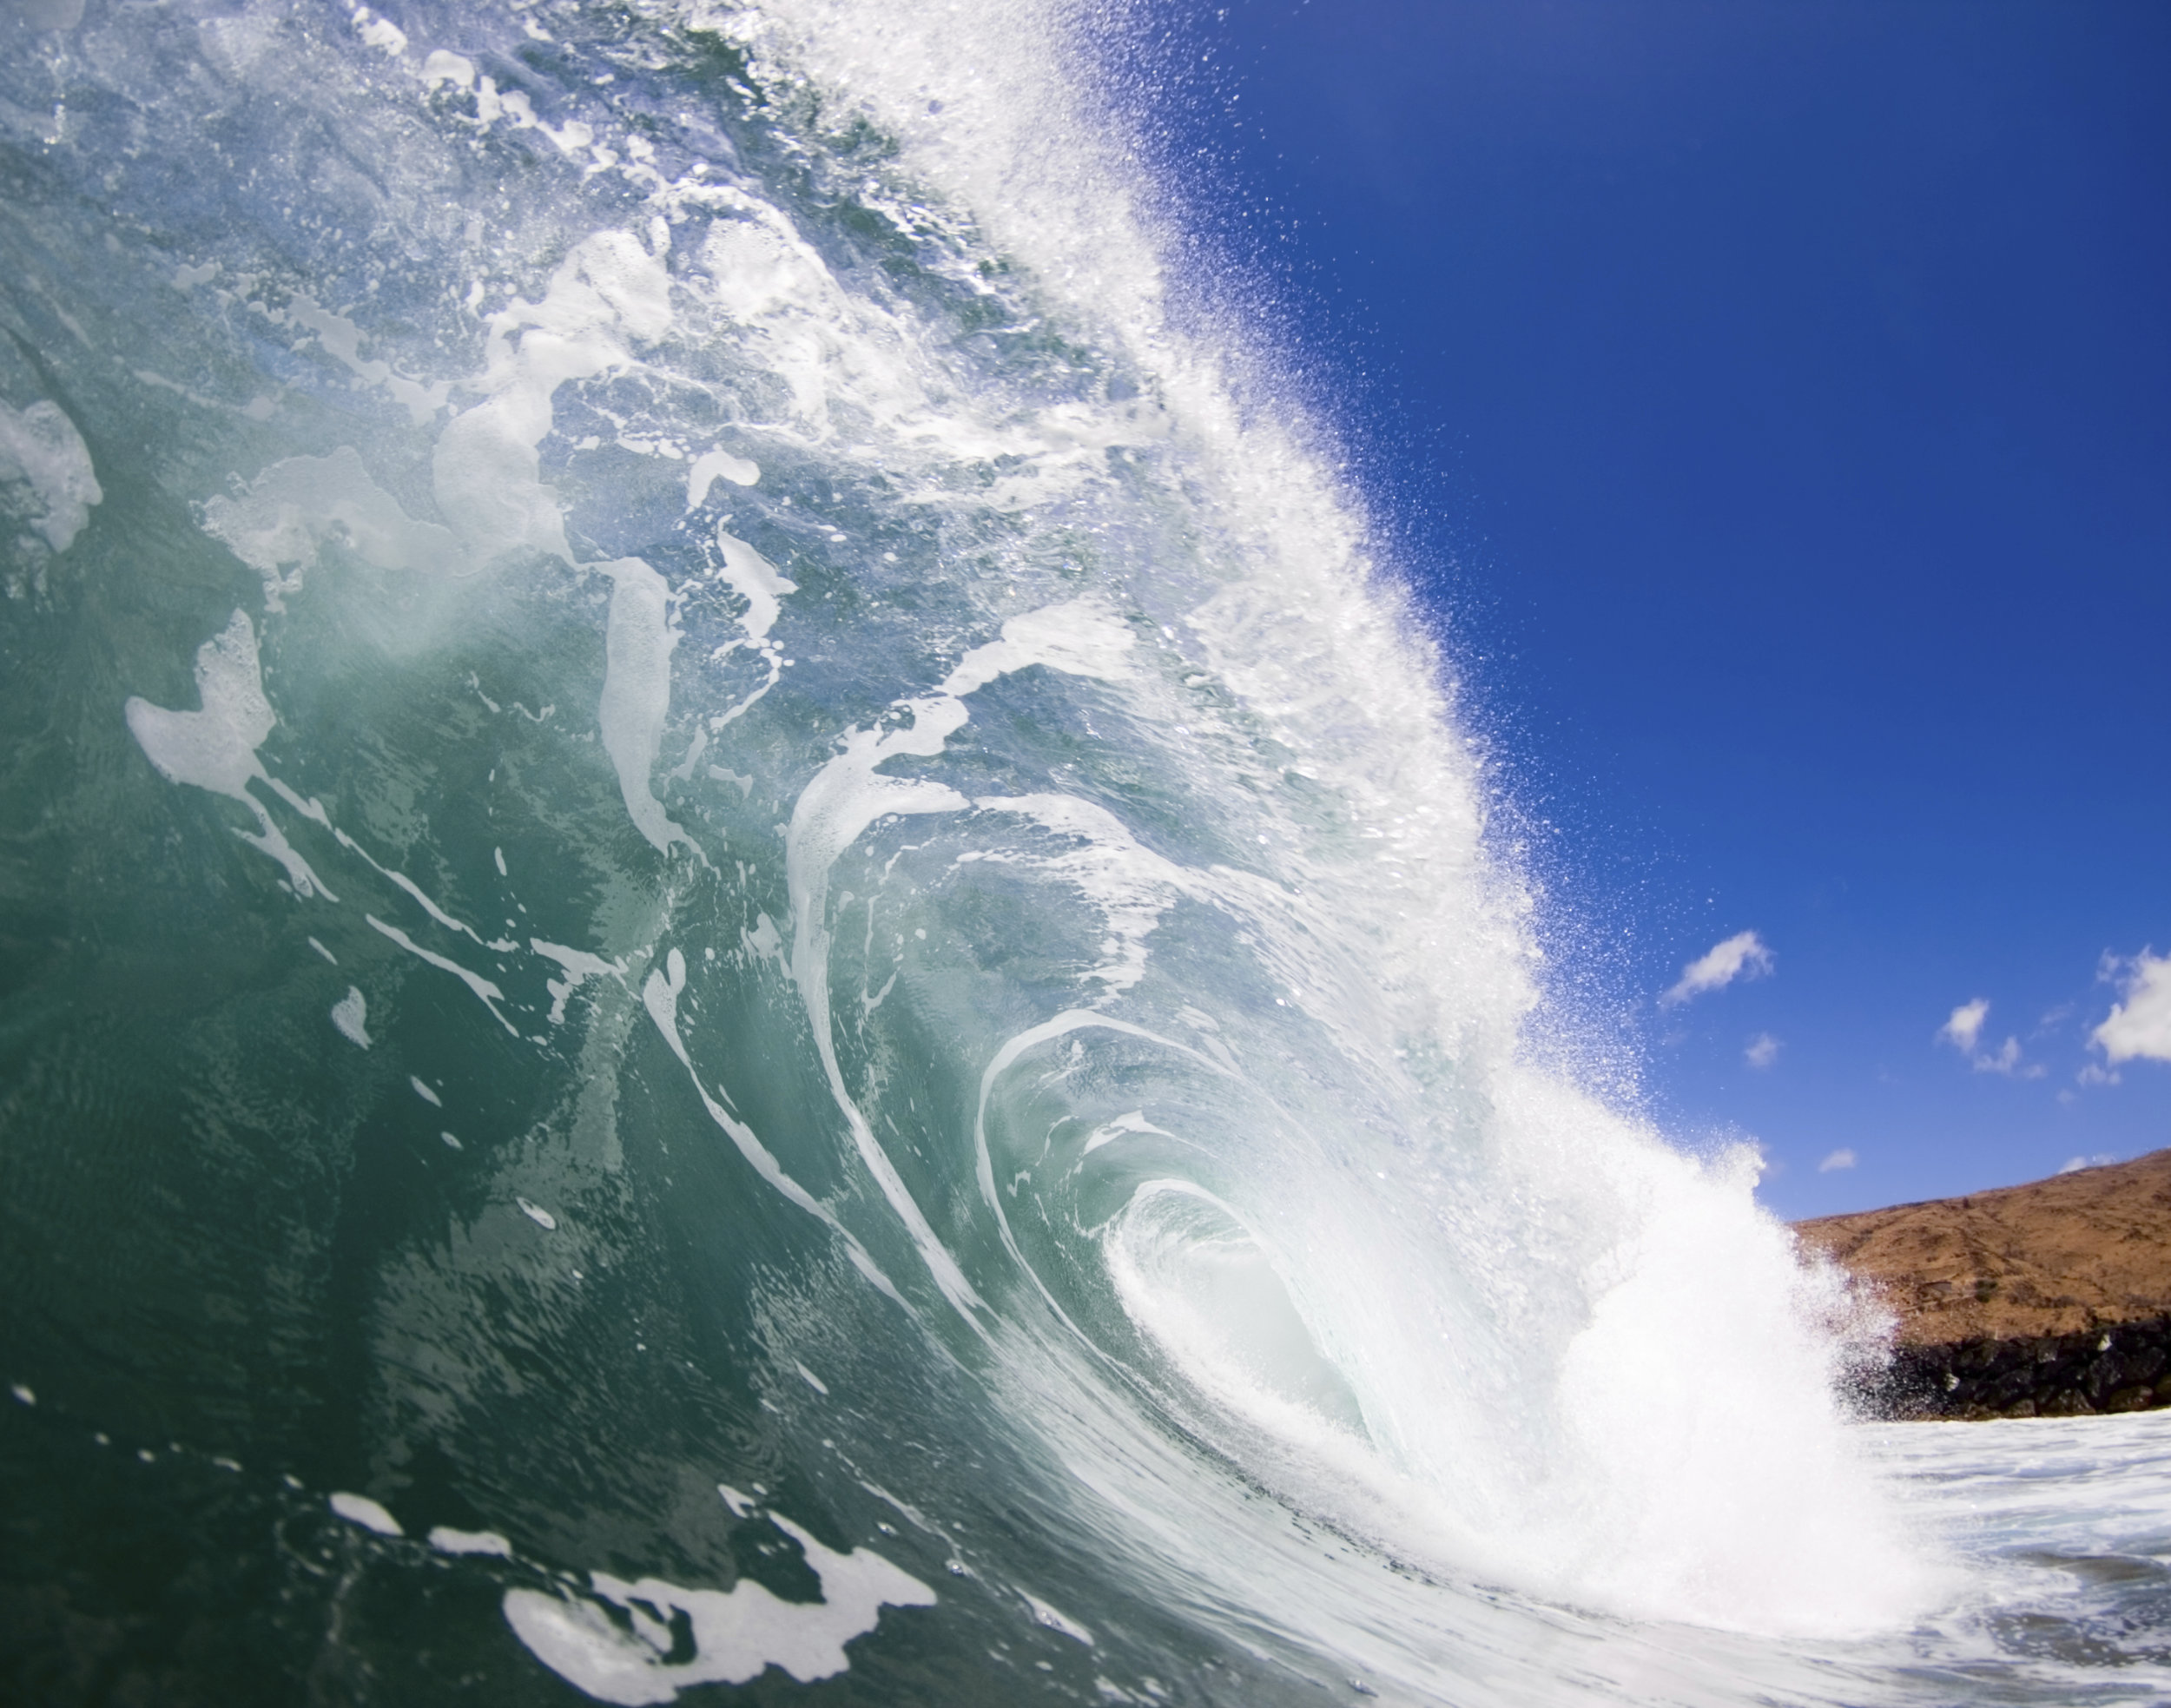 In the barrel of a perfect wave.